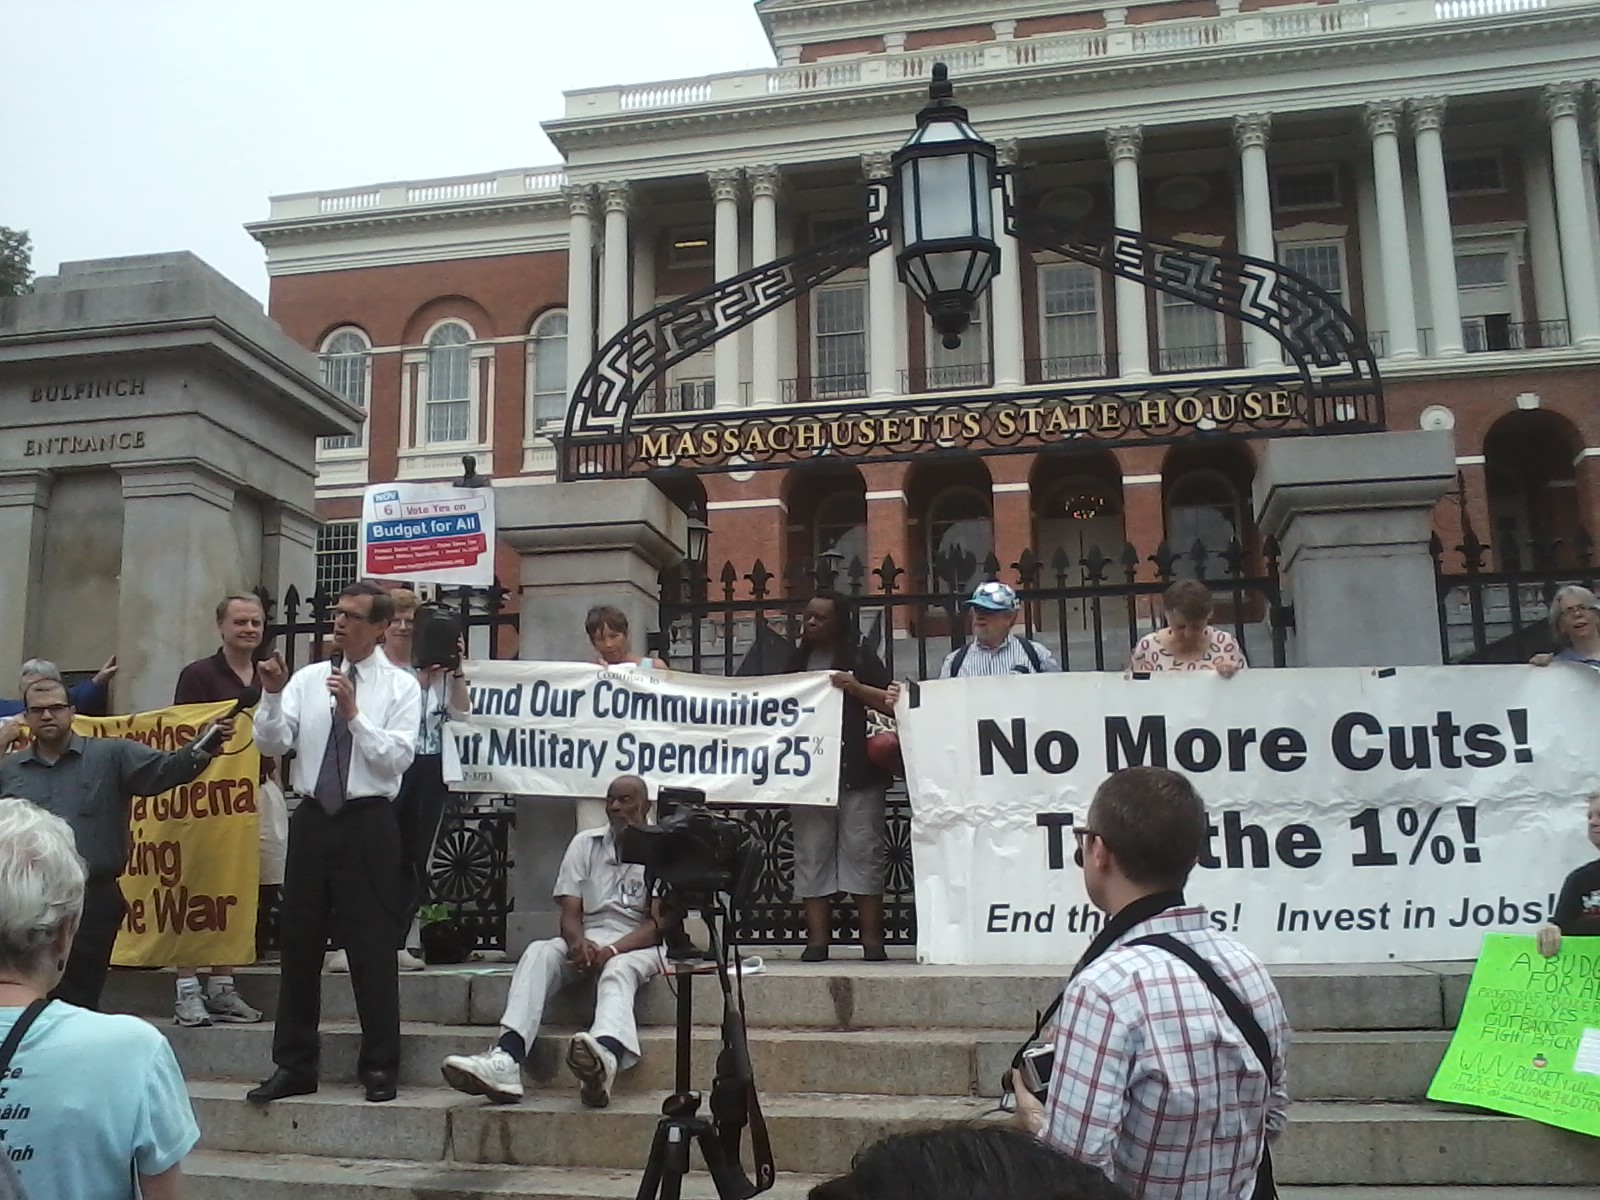 The Budget for All rally outside the MA State House